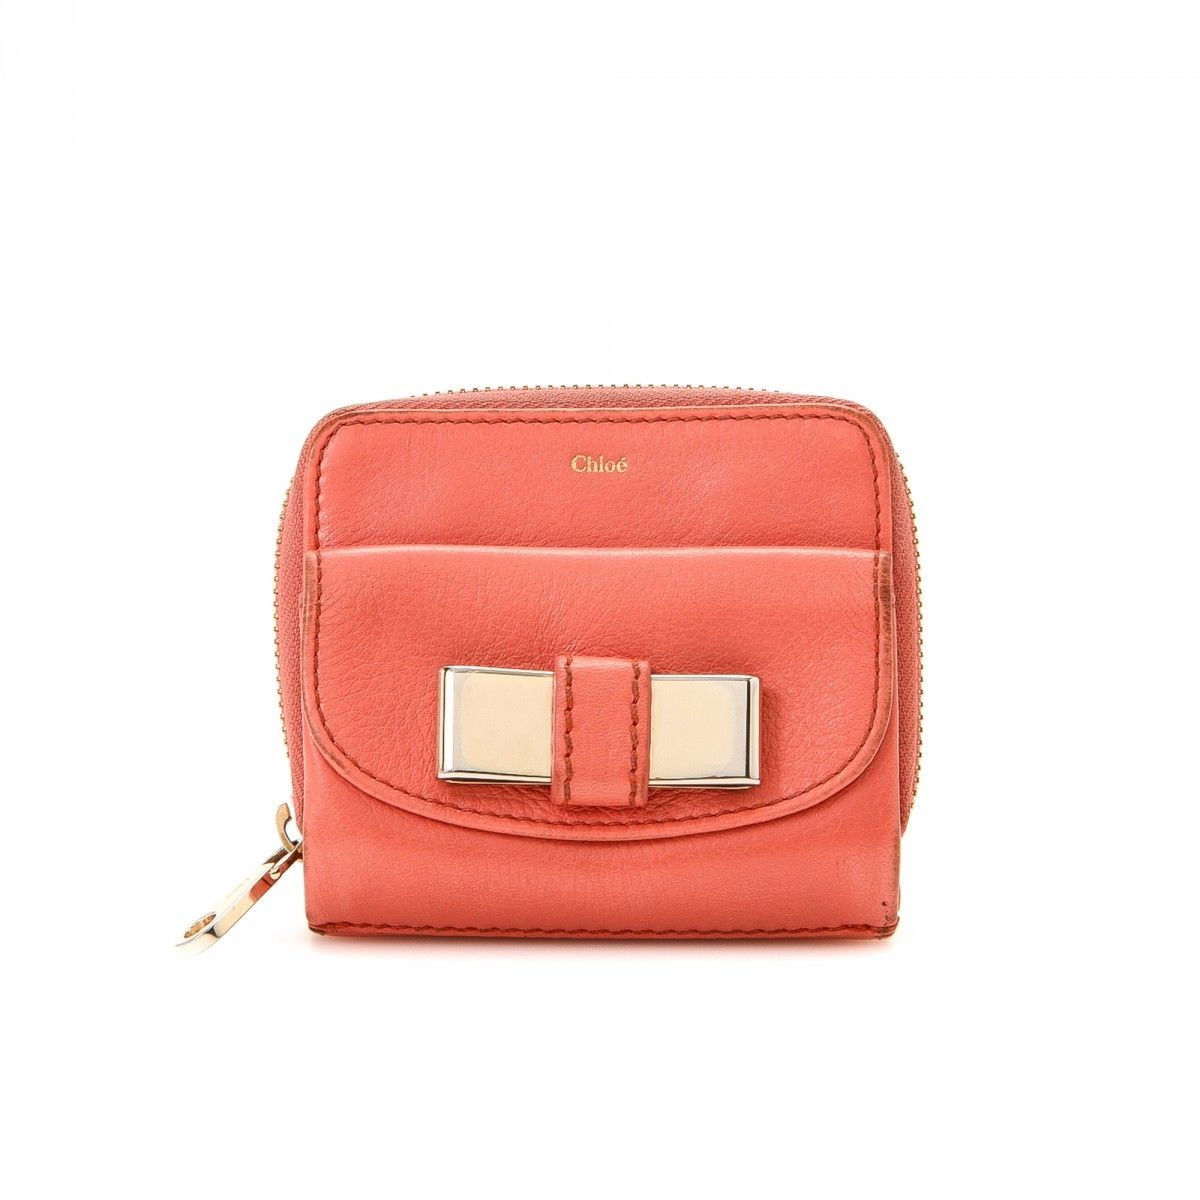 chloe.com - Women's Designer Ready-to-Wear, Bags ...